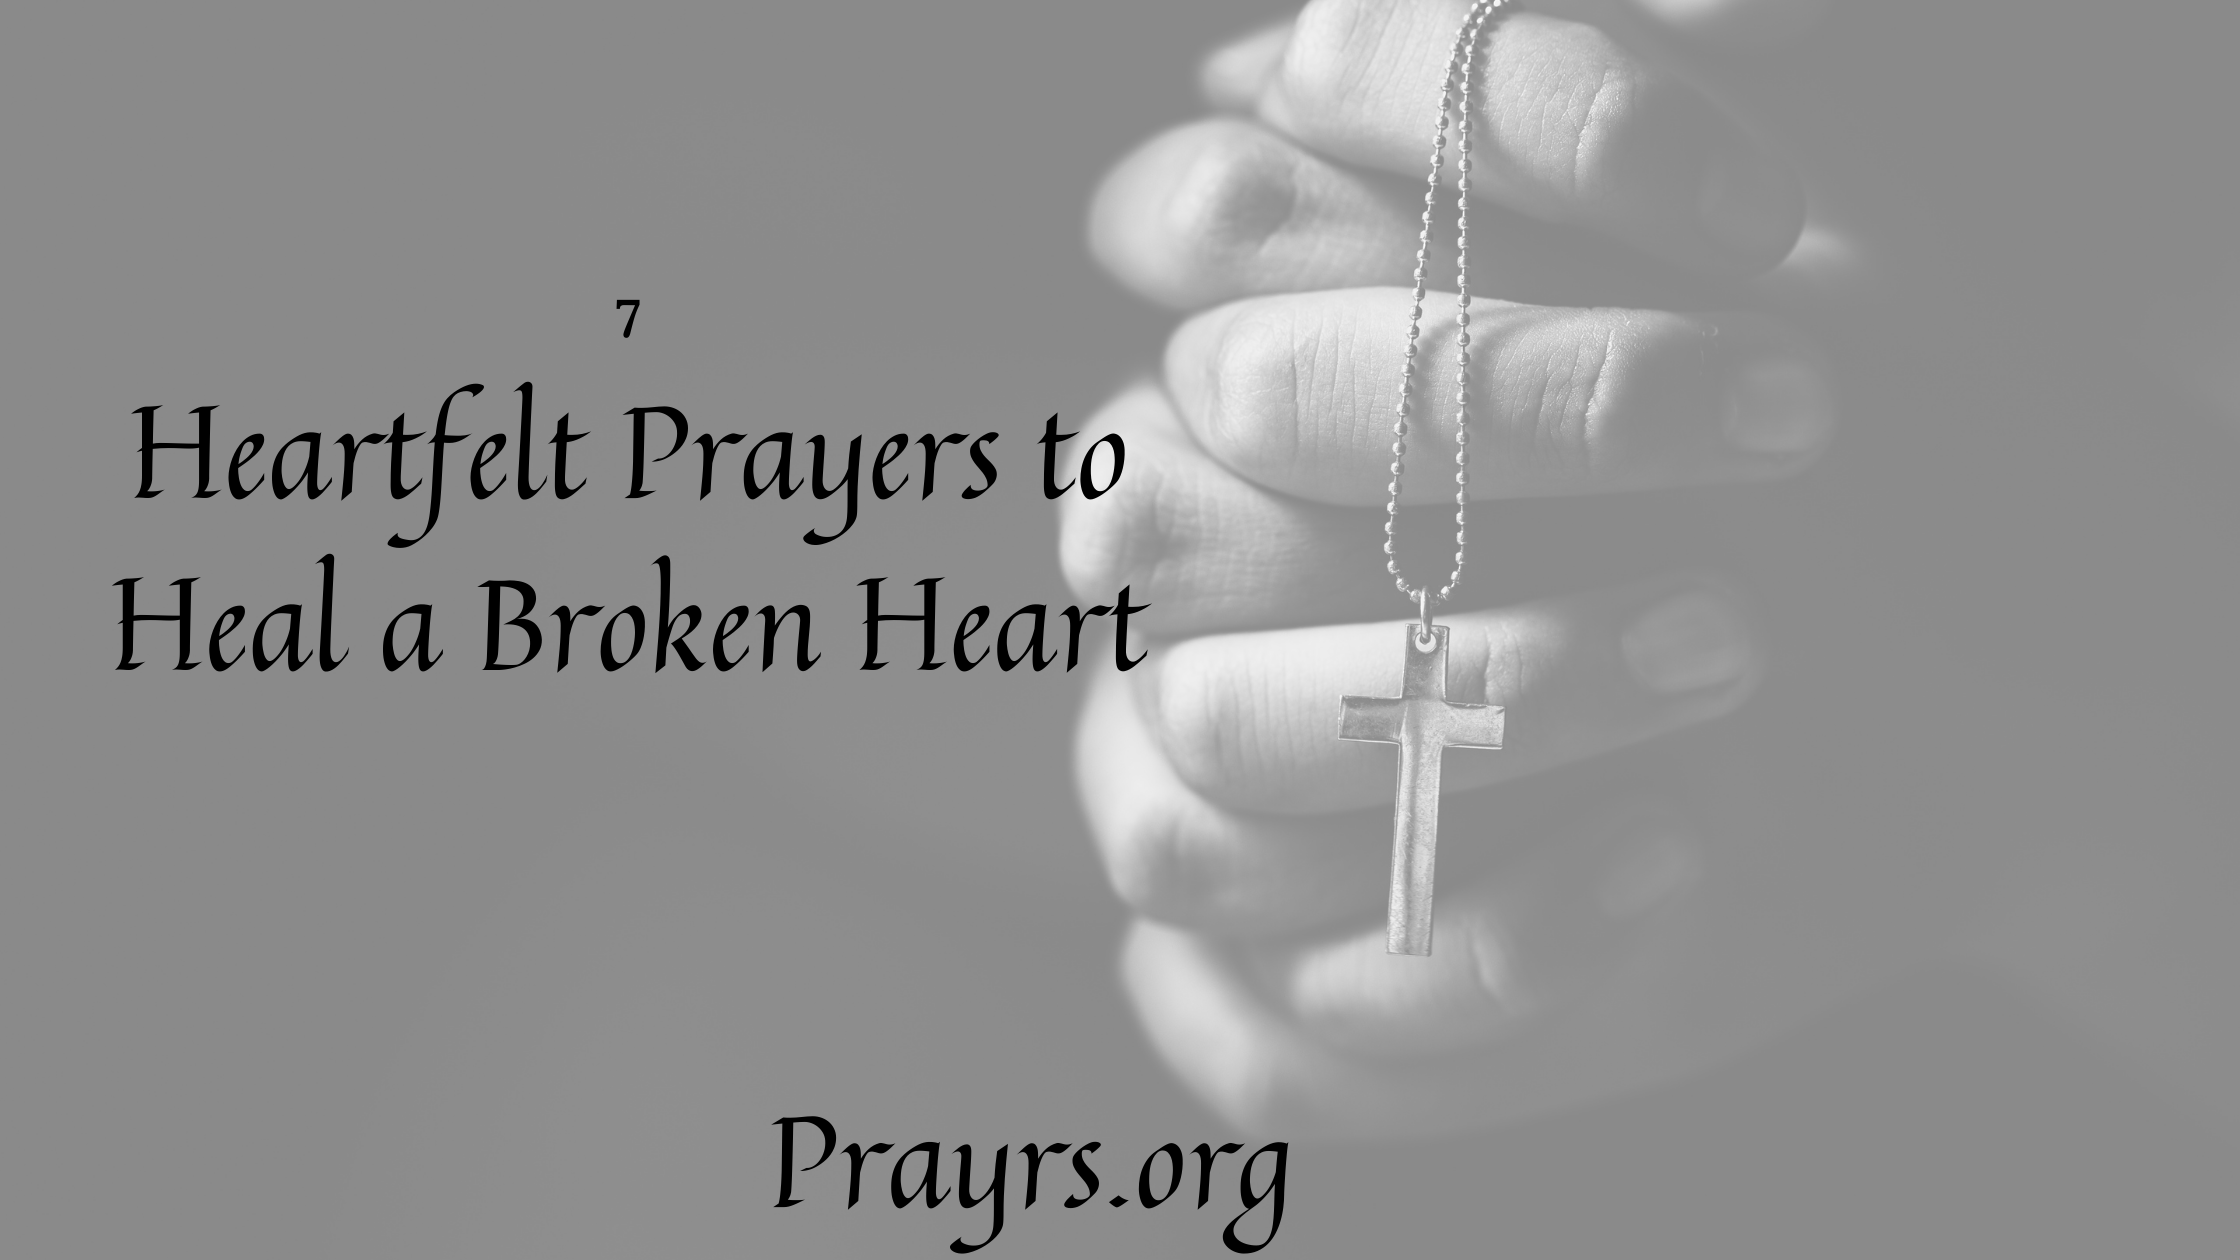 Heartfelt Prayers to Heal a Broken Heart